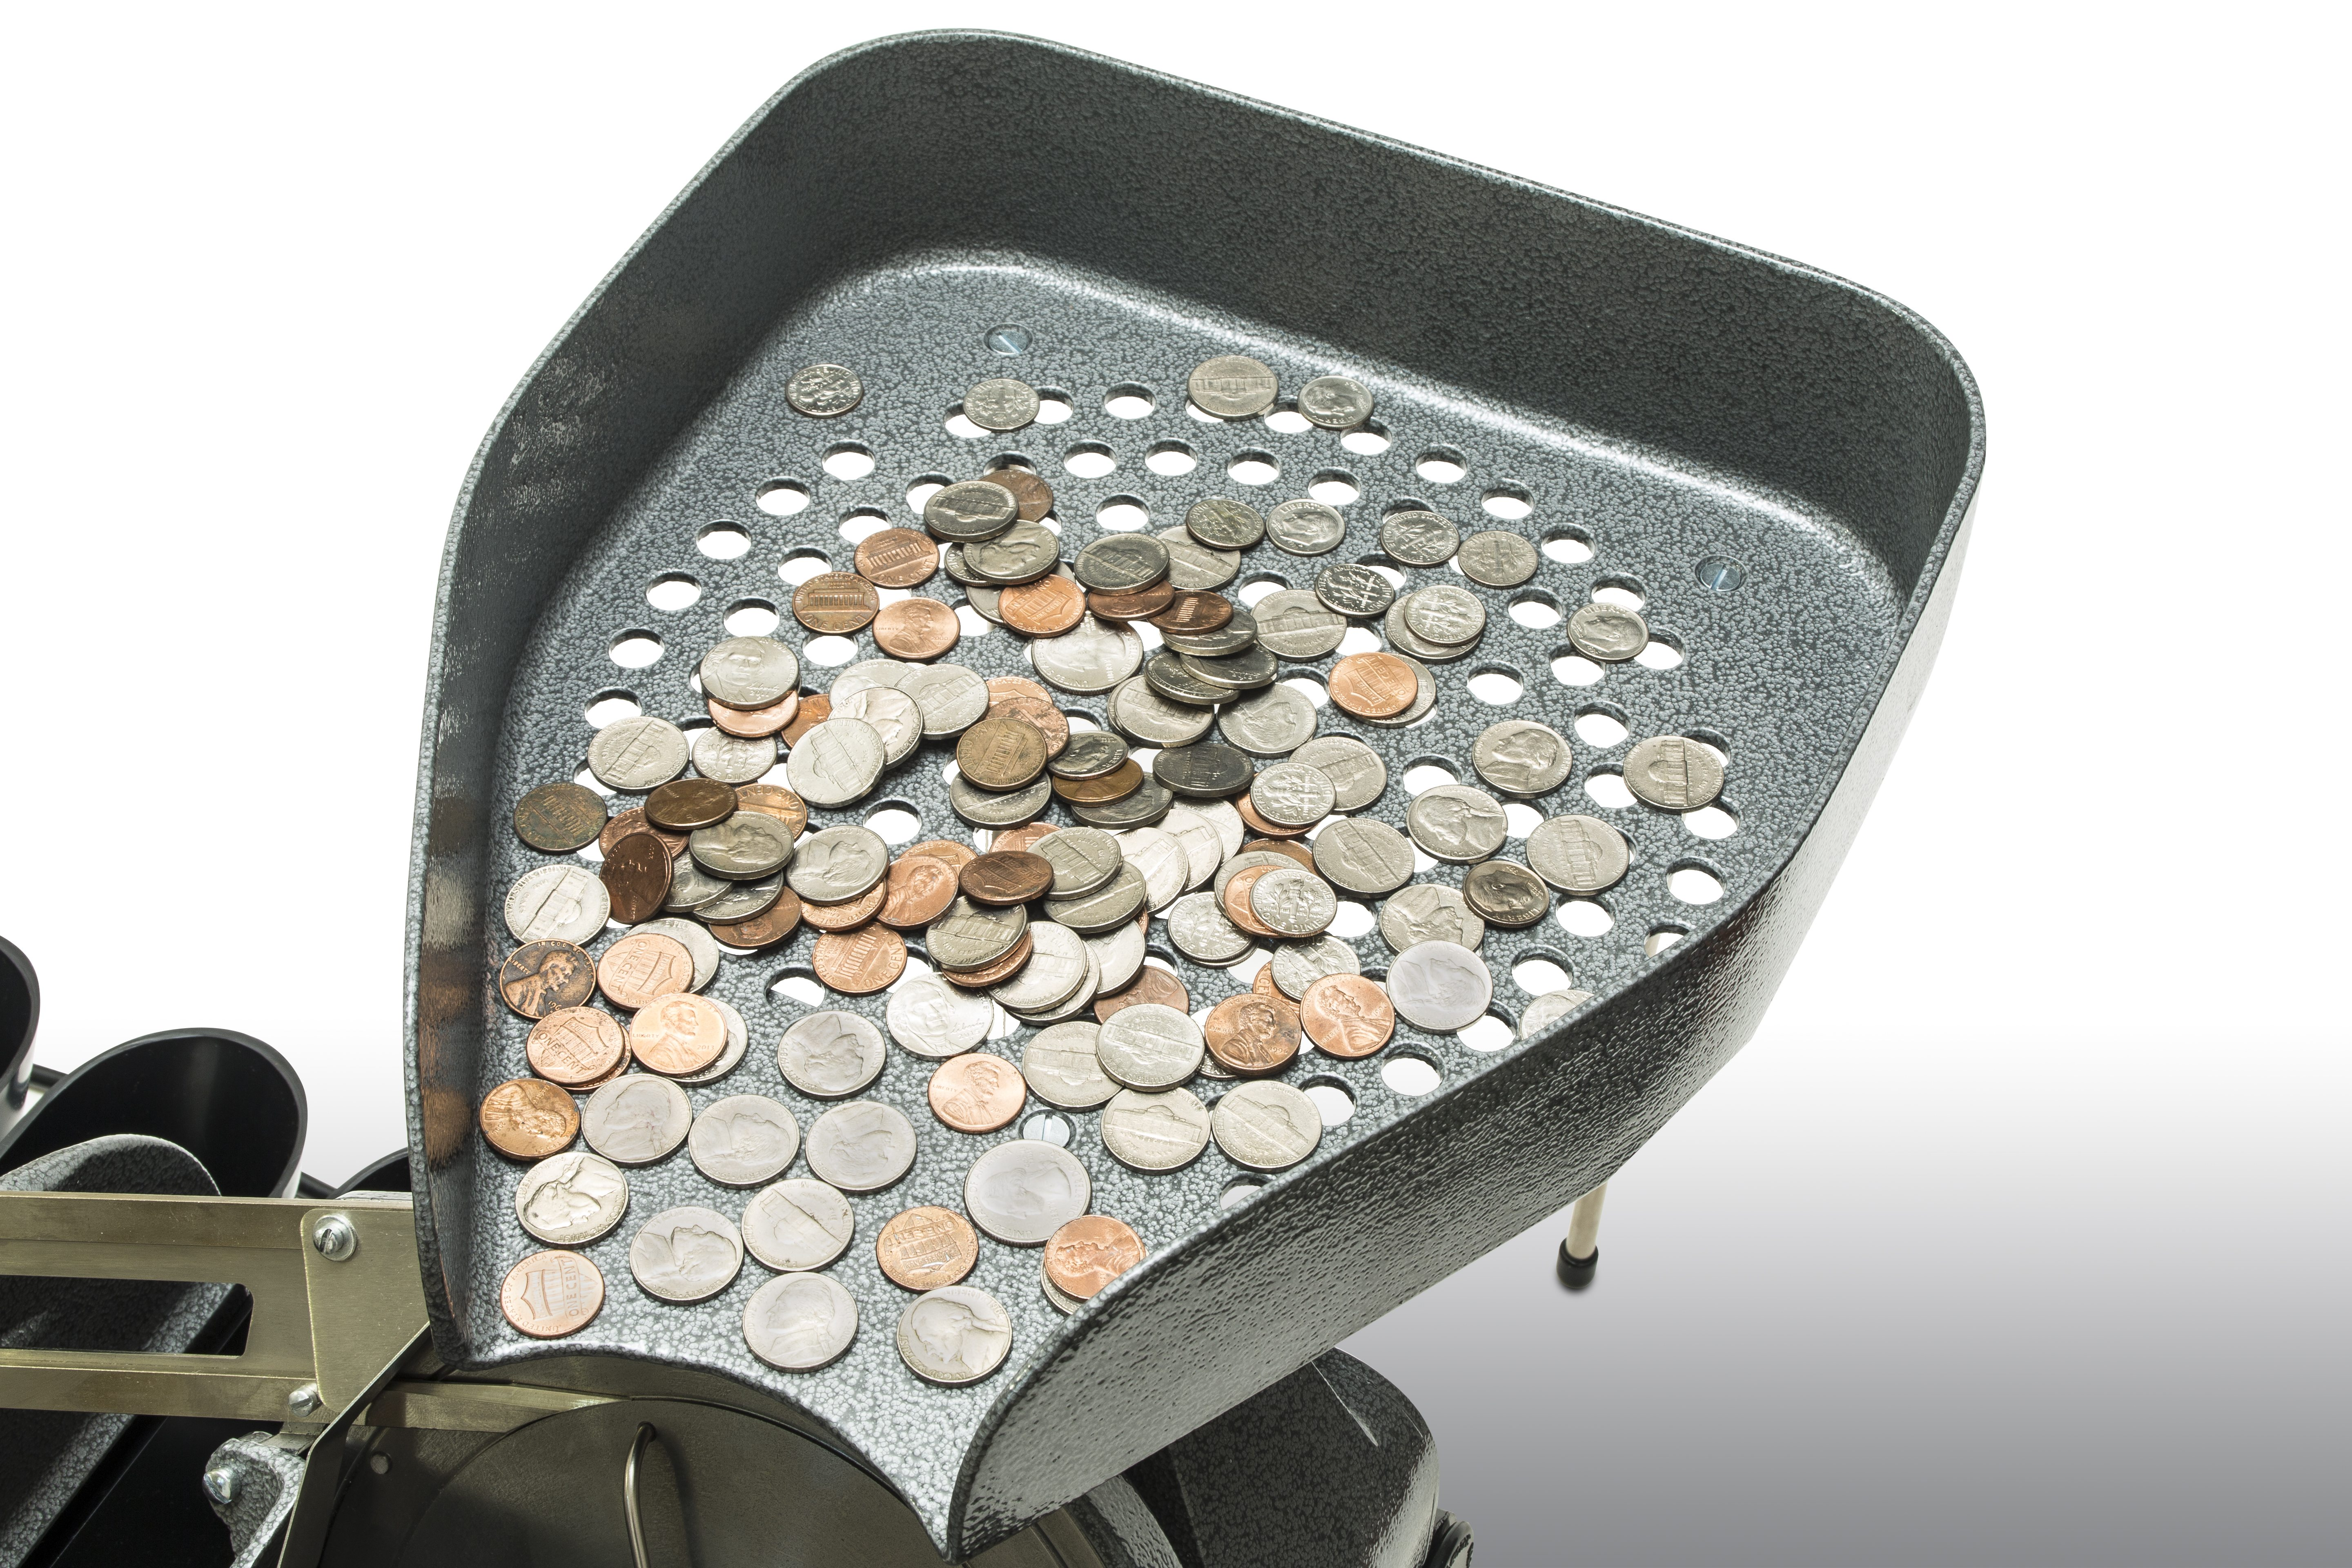 CoinTray061617